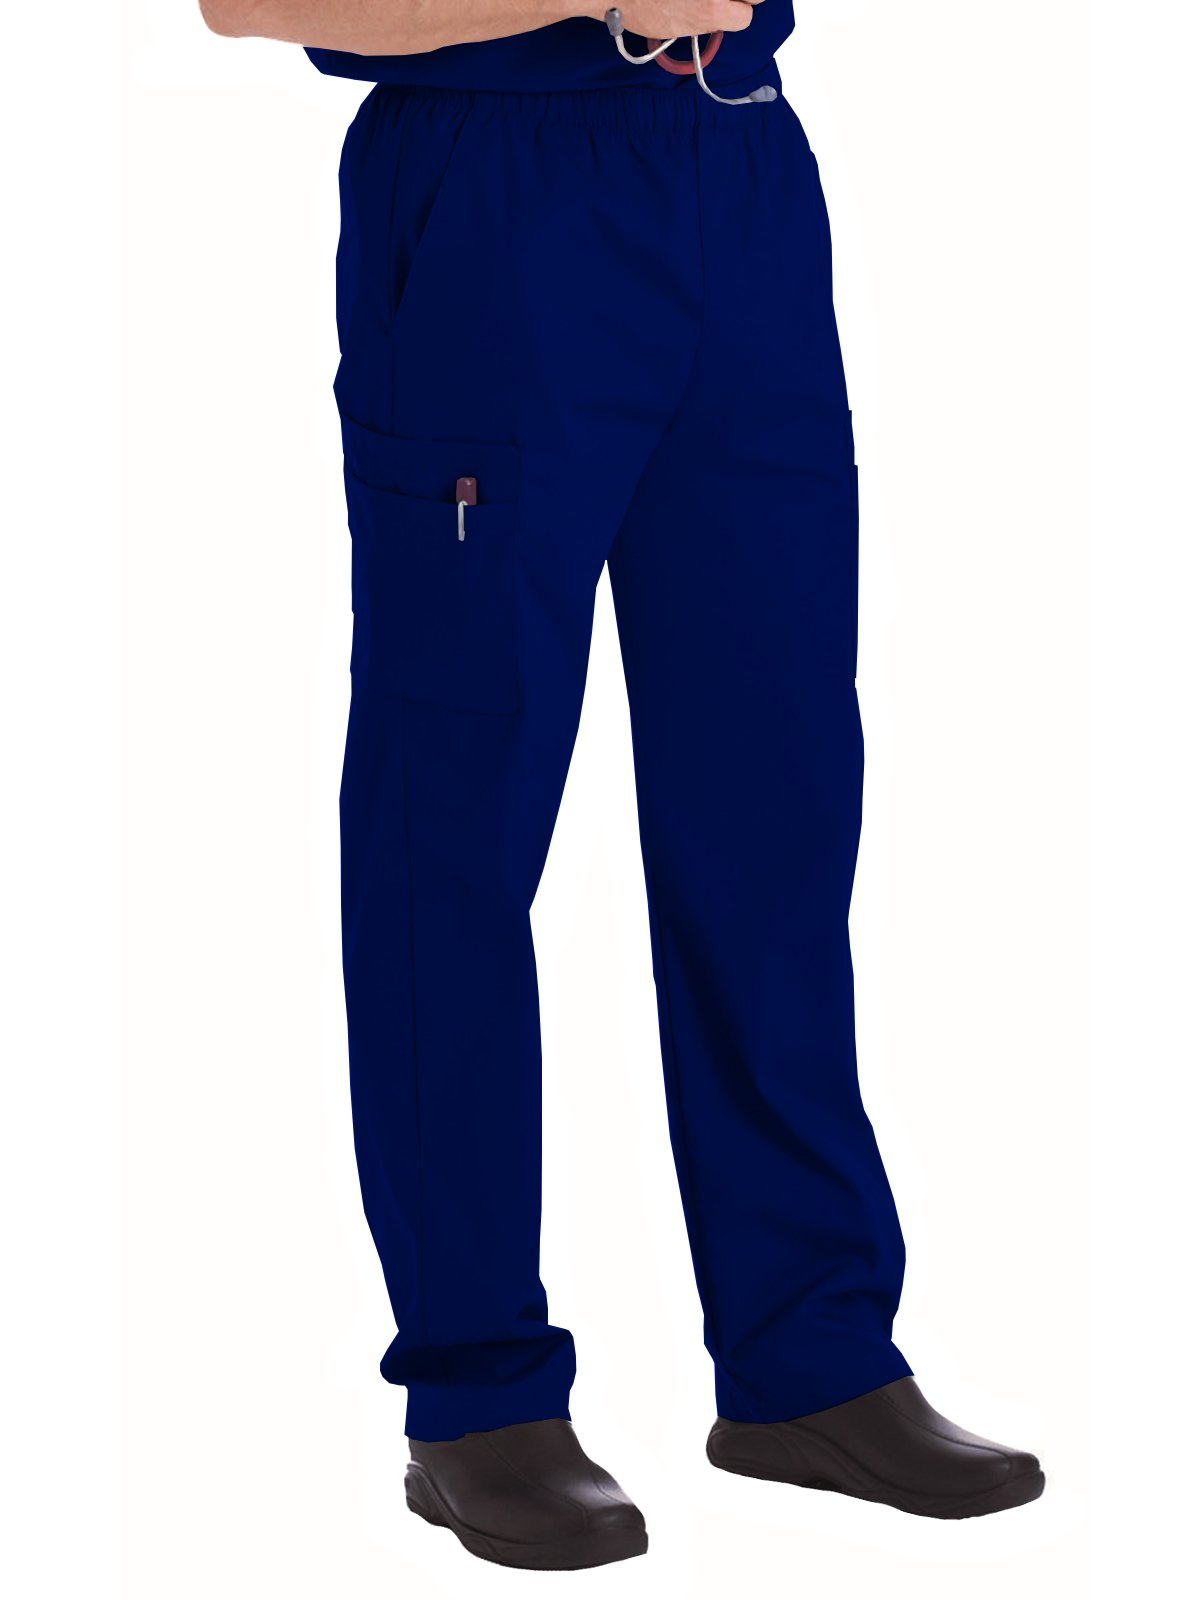 Landau Essentials 8555 Men's Cargo Scrub Pant True Navy XLT